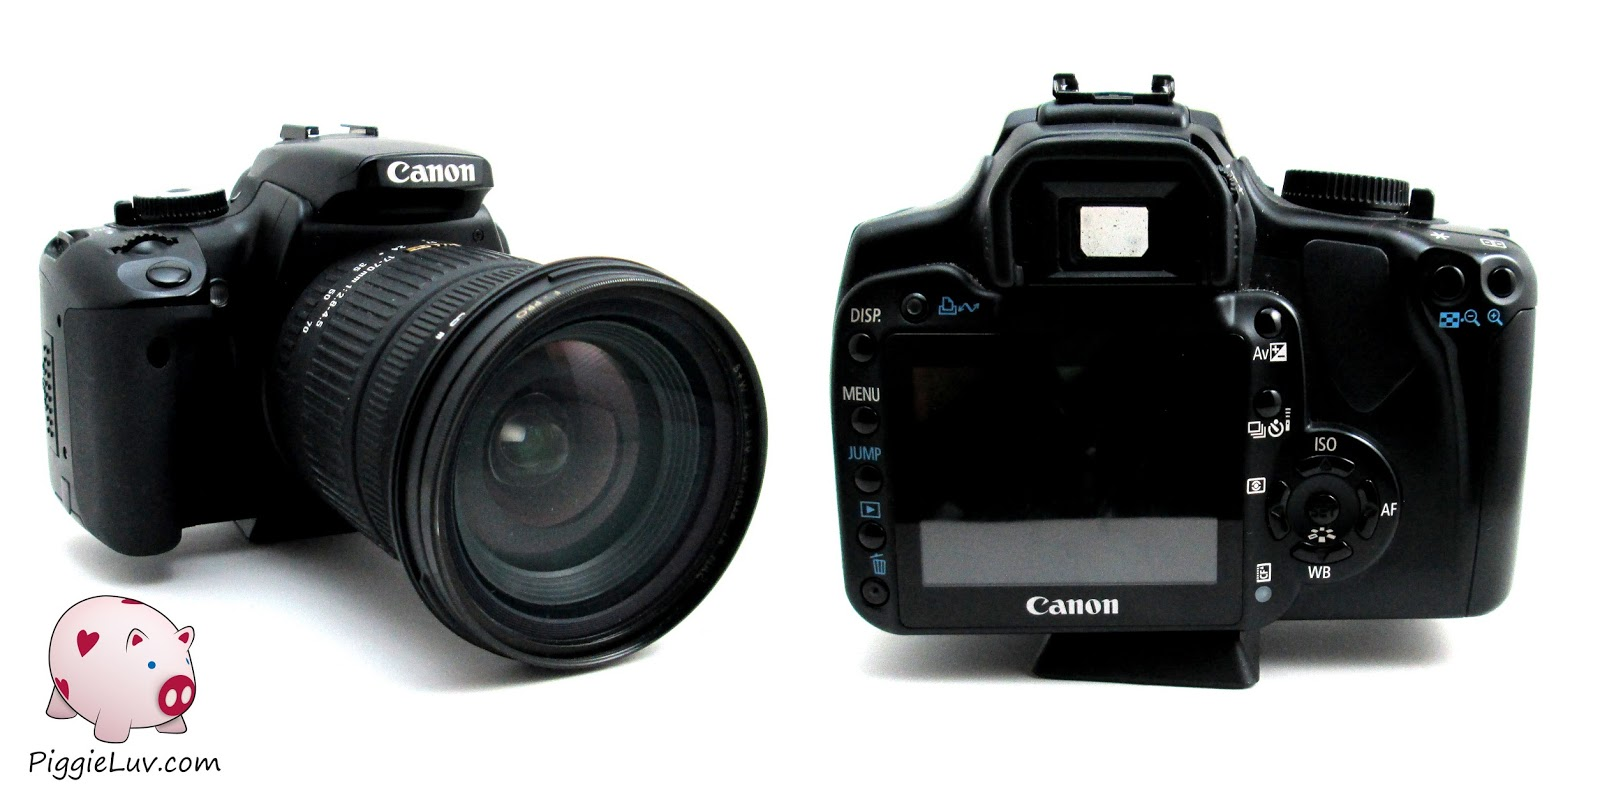 Camera Dslr Camera Tutorials piggieluv 10 ways to make your nail photos look even better i myself use a digital camera dslr of spiegelreflex in het nederlands and this is my kind machine have canon eos 400d that i